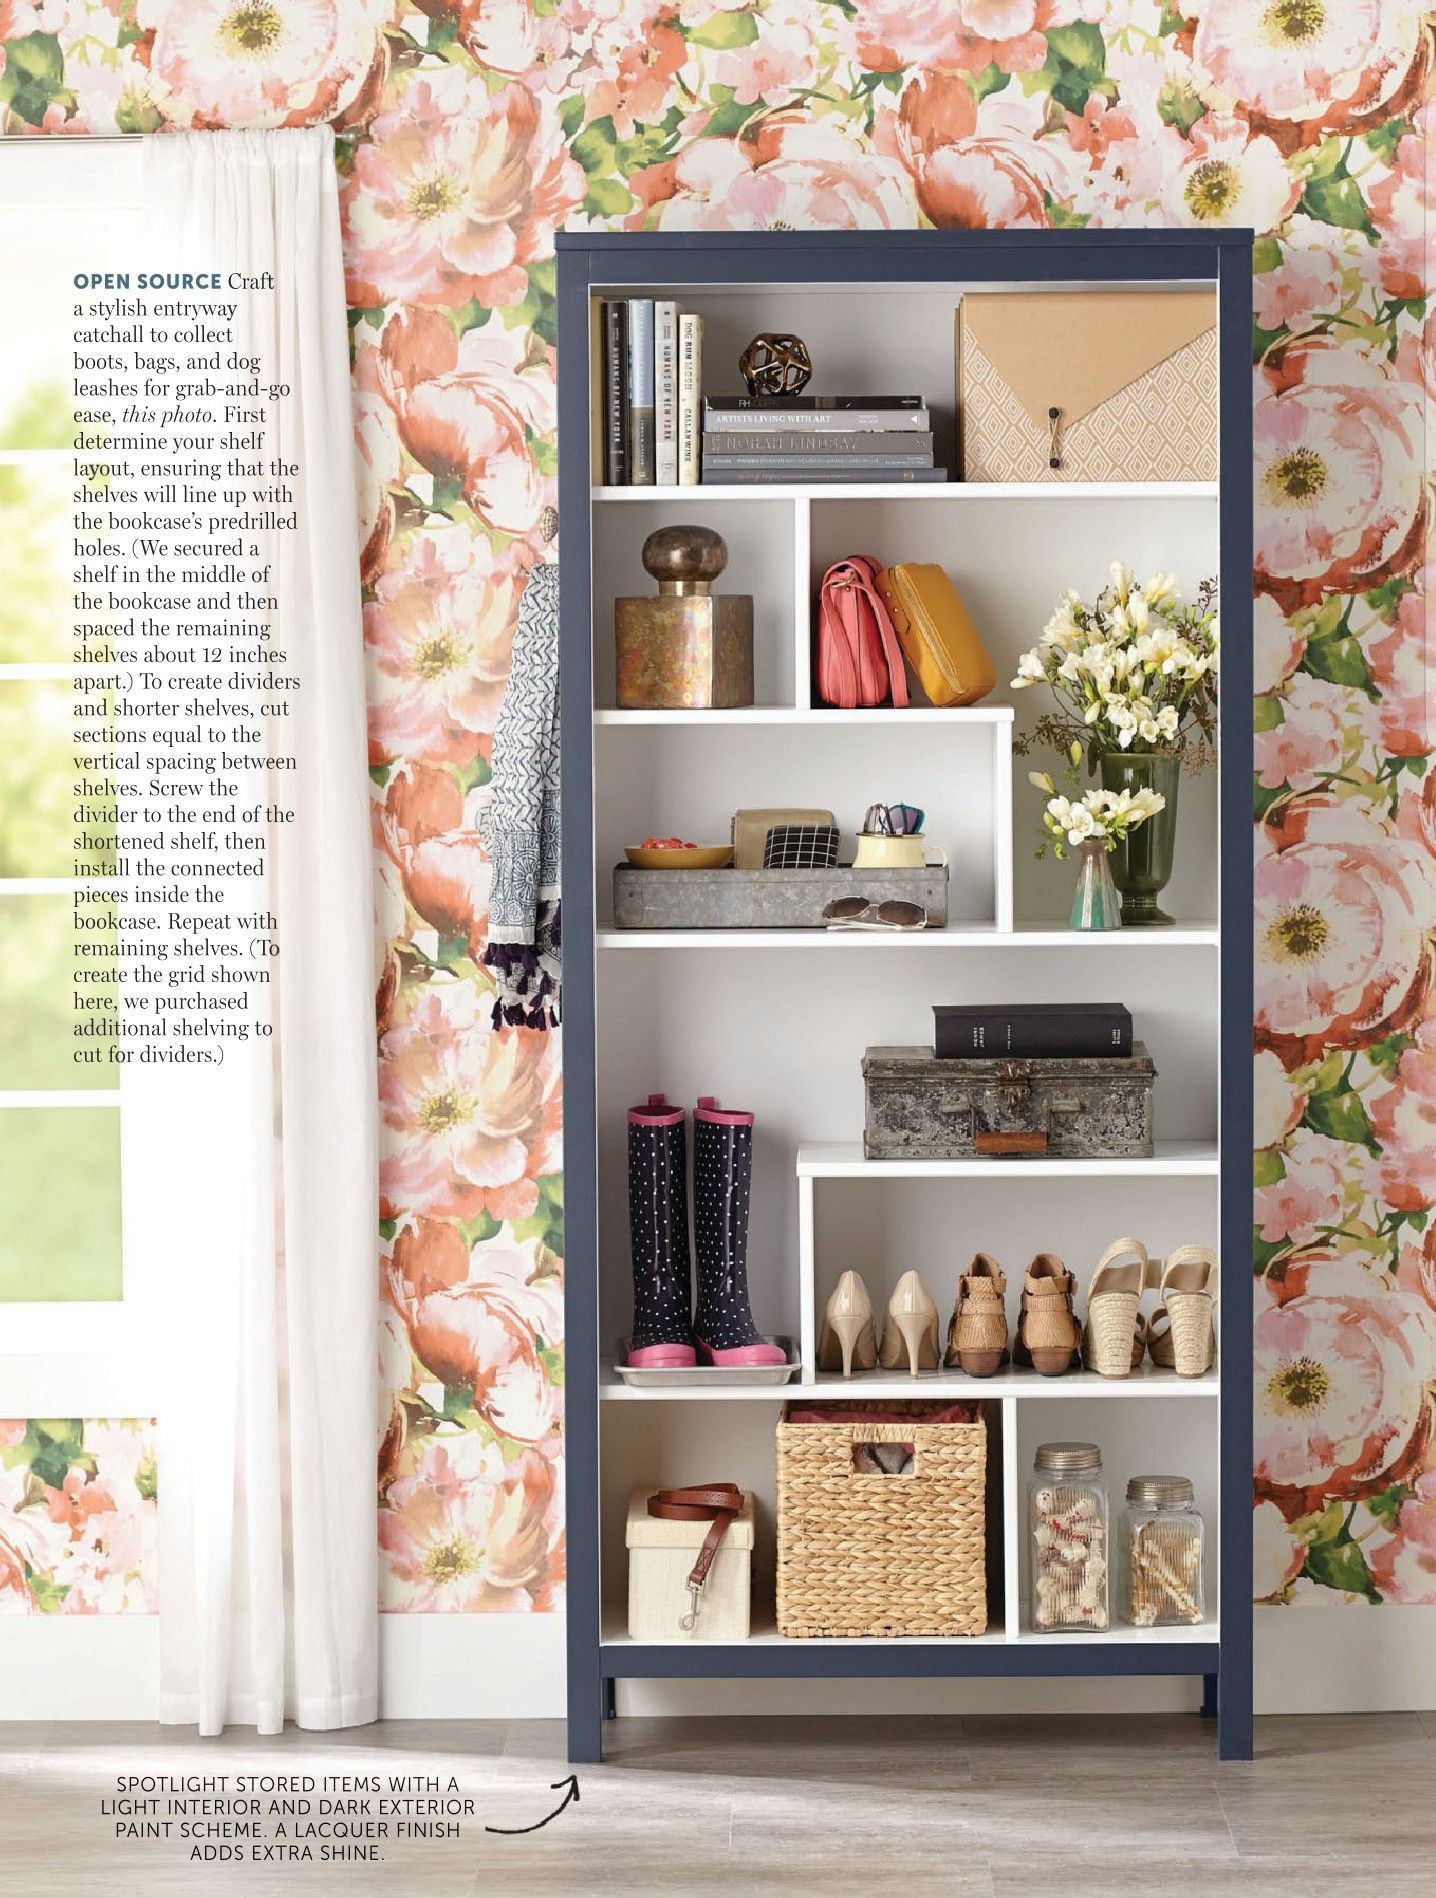 Pin By Virginia Parks On Walls Ceilings Painting Shelves Home Decor Do It Yourself Magazine